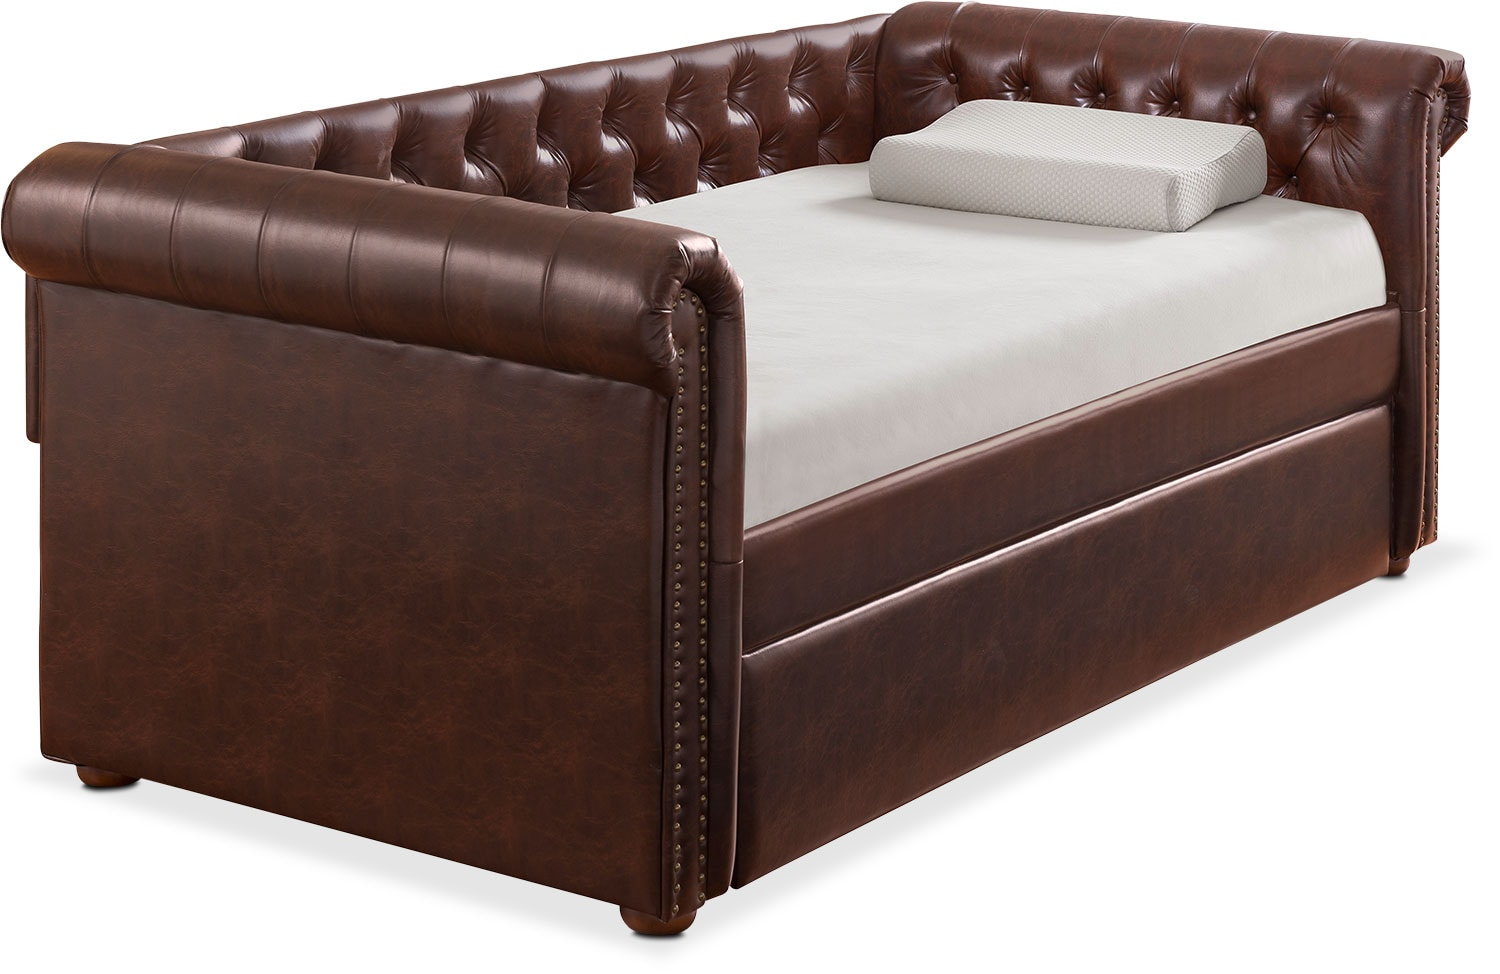 Kids Furniture - Shelton Twin Upholstered Daybed with Twin Trundle - Brown